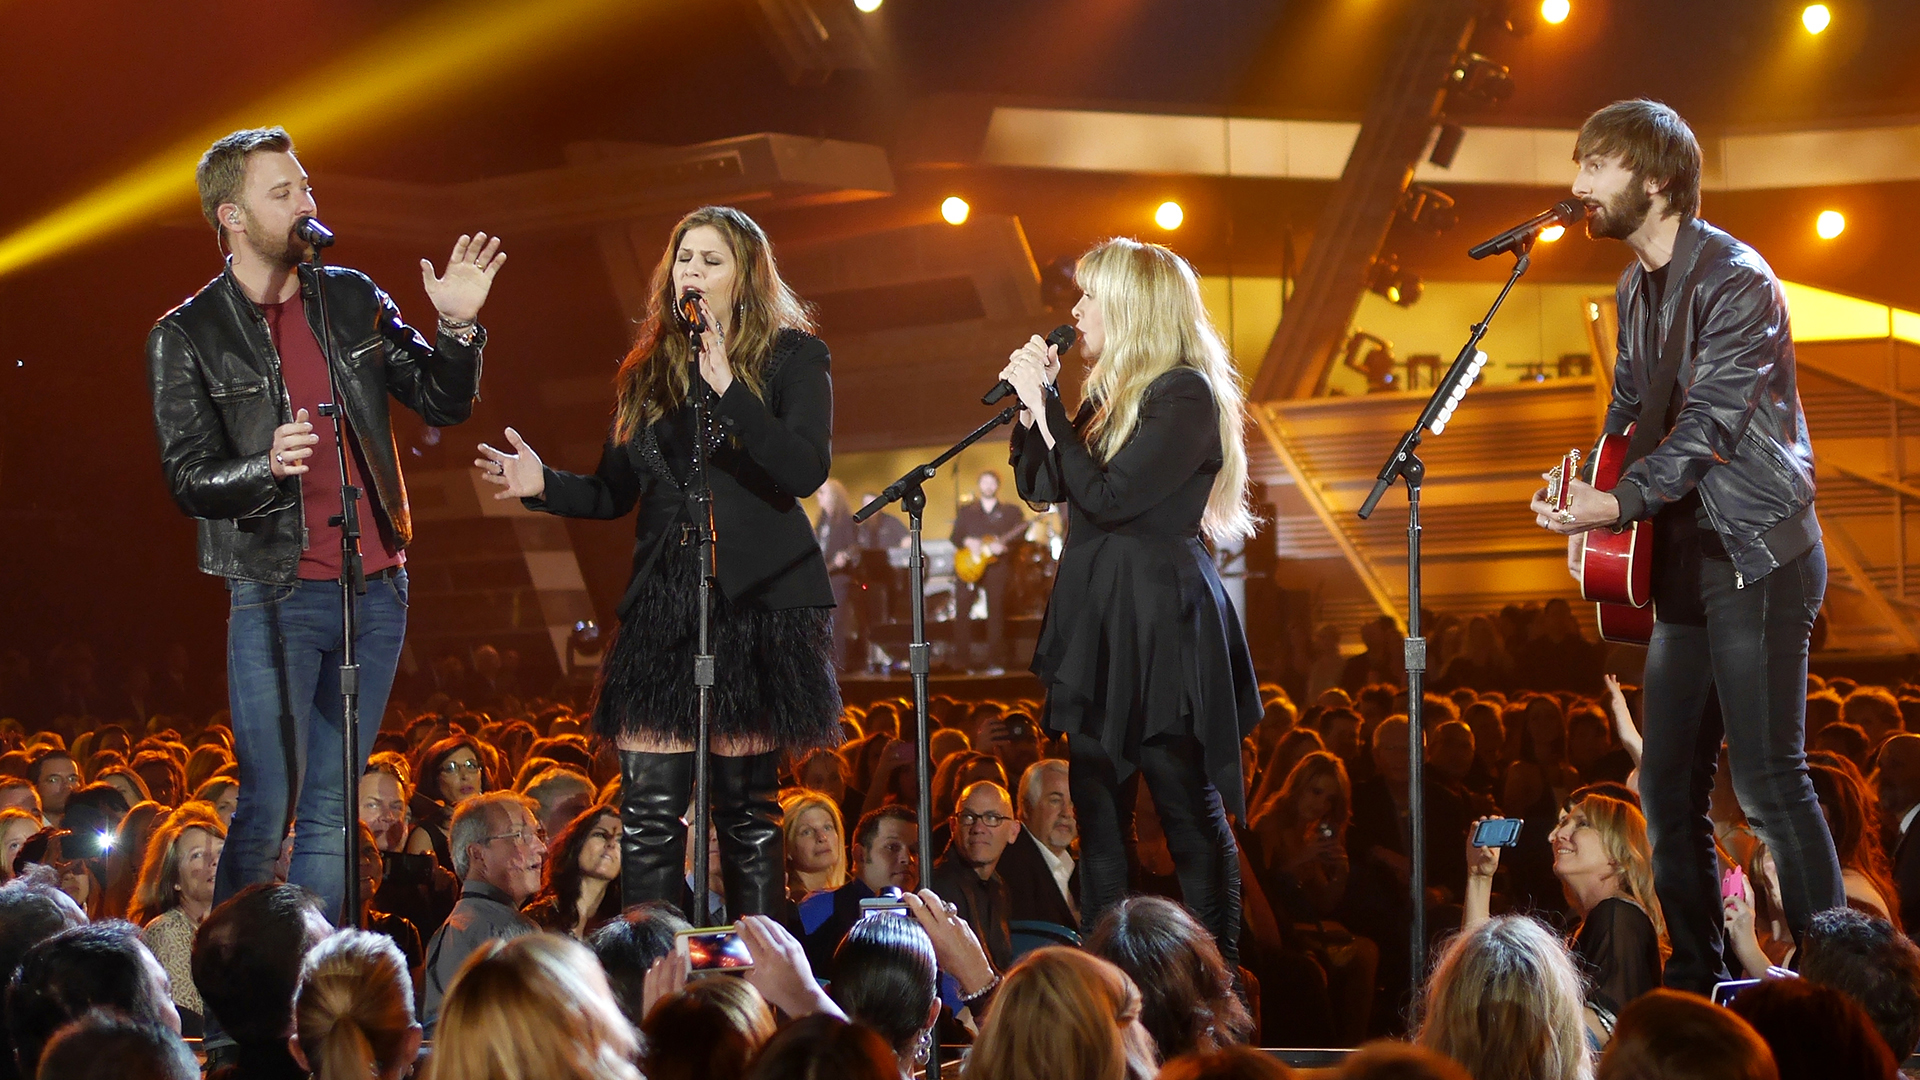 5. Lady Antebellum and Stevie Nicks perform